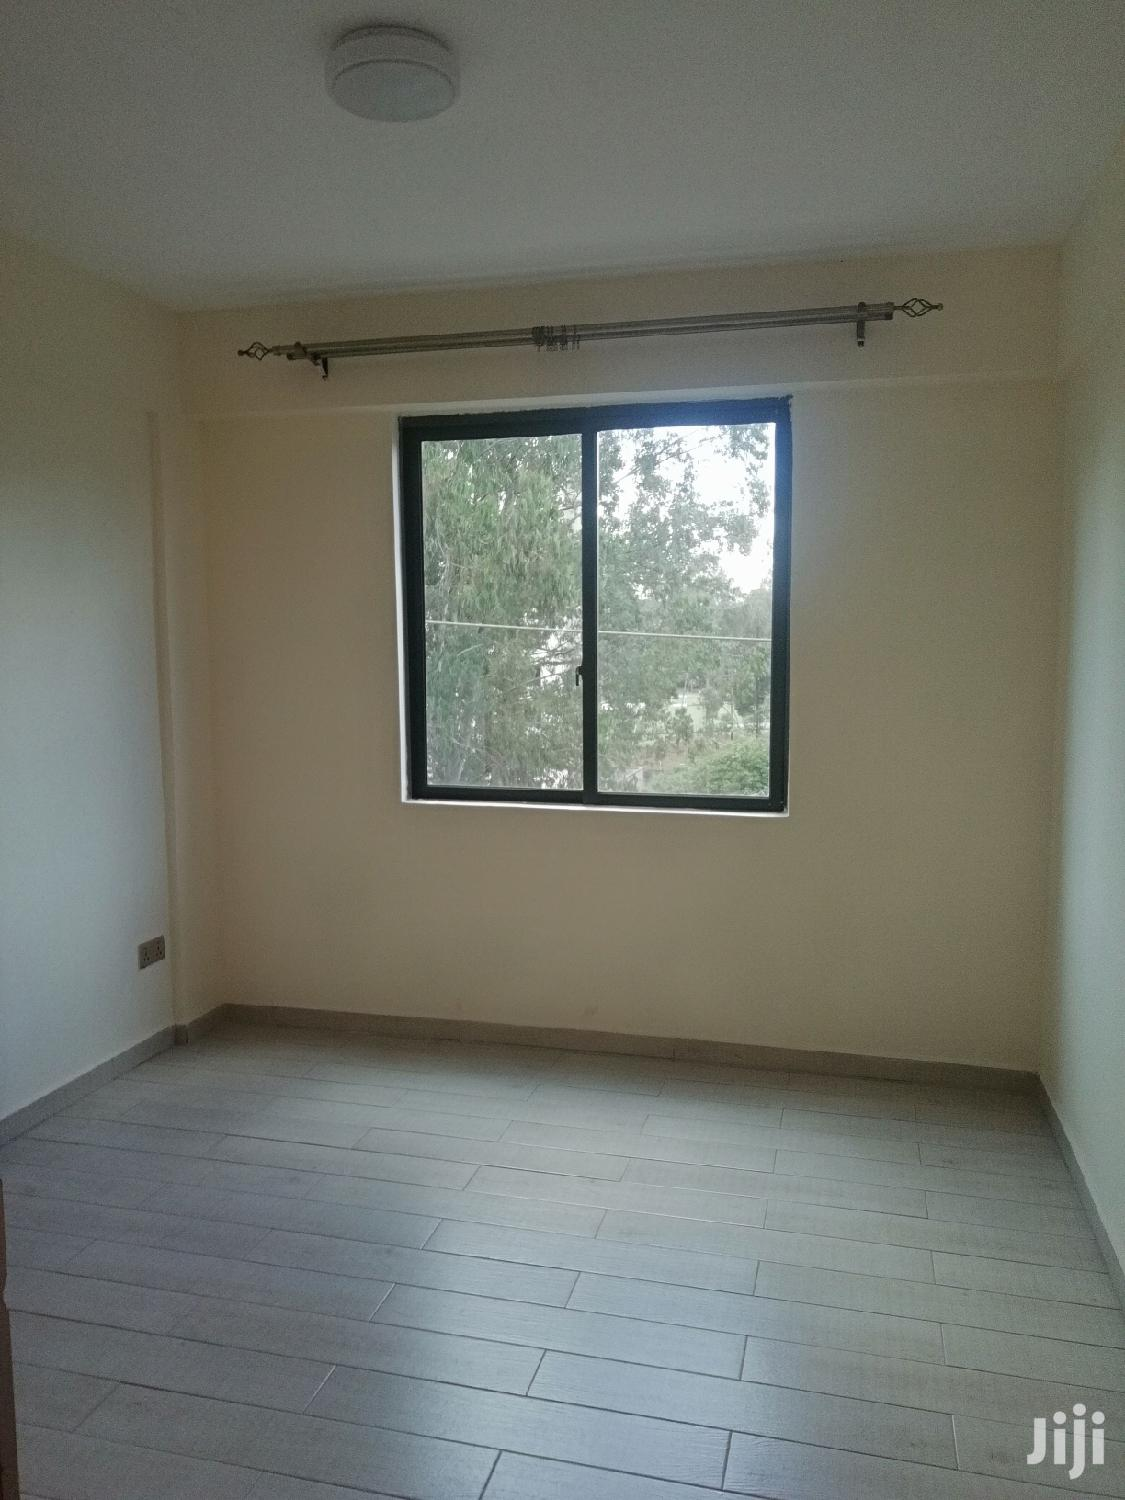 Propertyworld,2brs Apartment With ,Gym,Lift and Very Secure   Houses & Apartments For Rent for sale in Lavington, Nairobi, Kenya